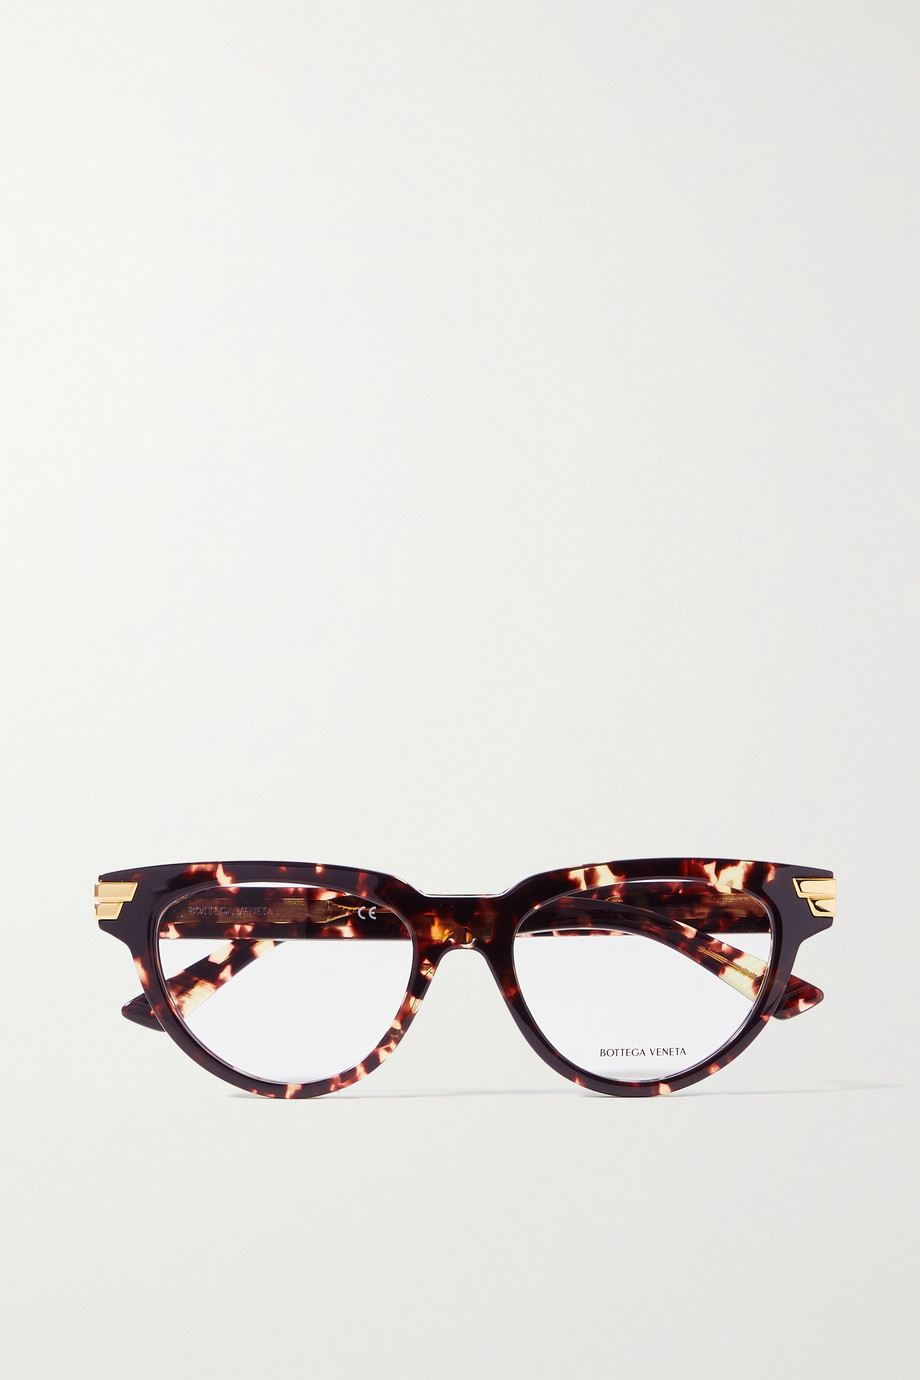 Bottega Veneta Cat-eye tortoiseshell acetate optical glasses